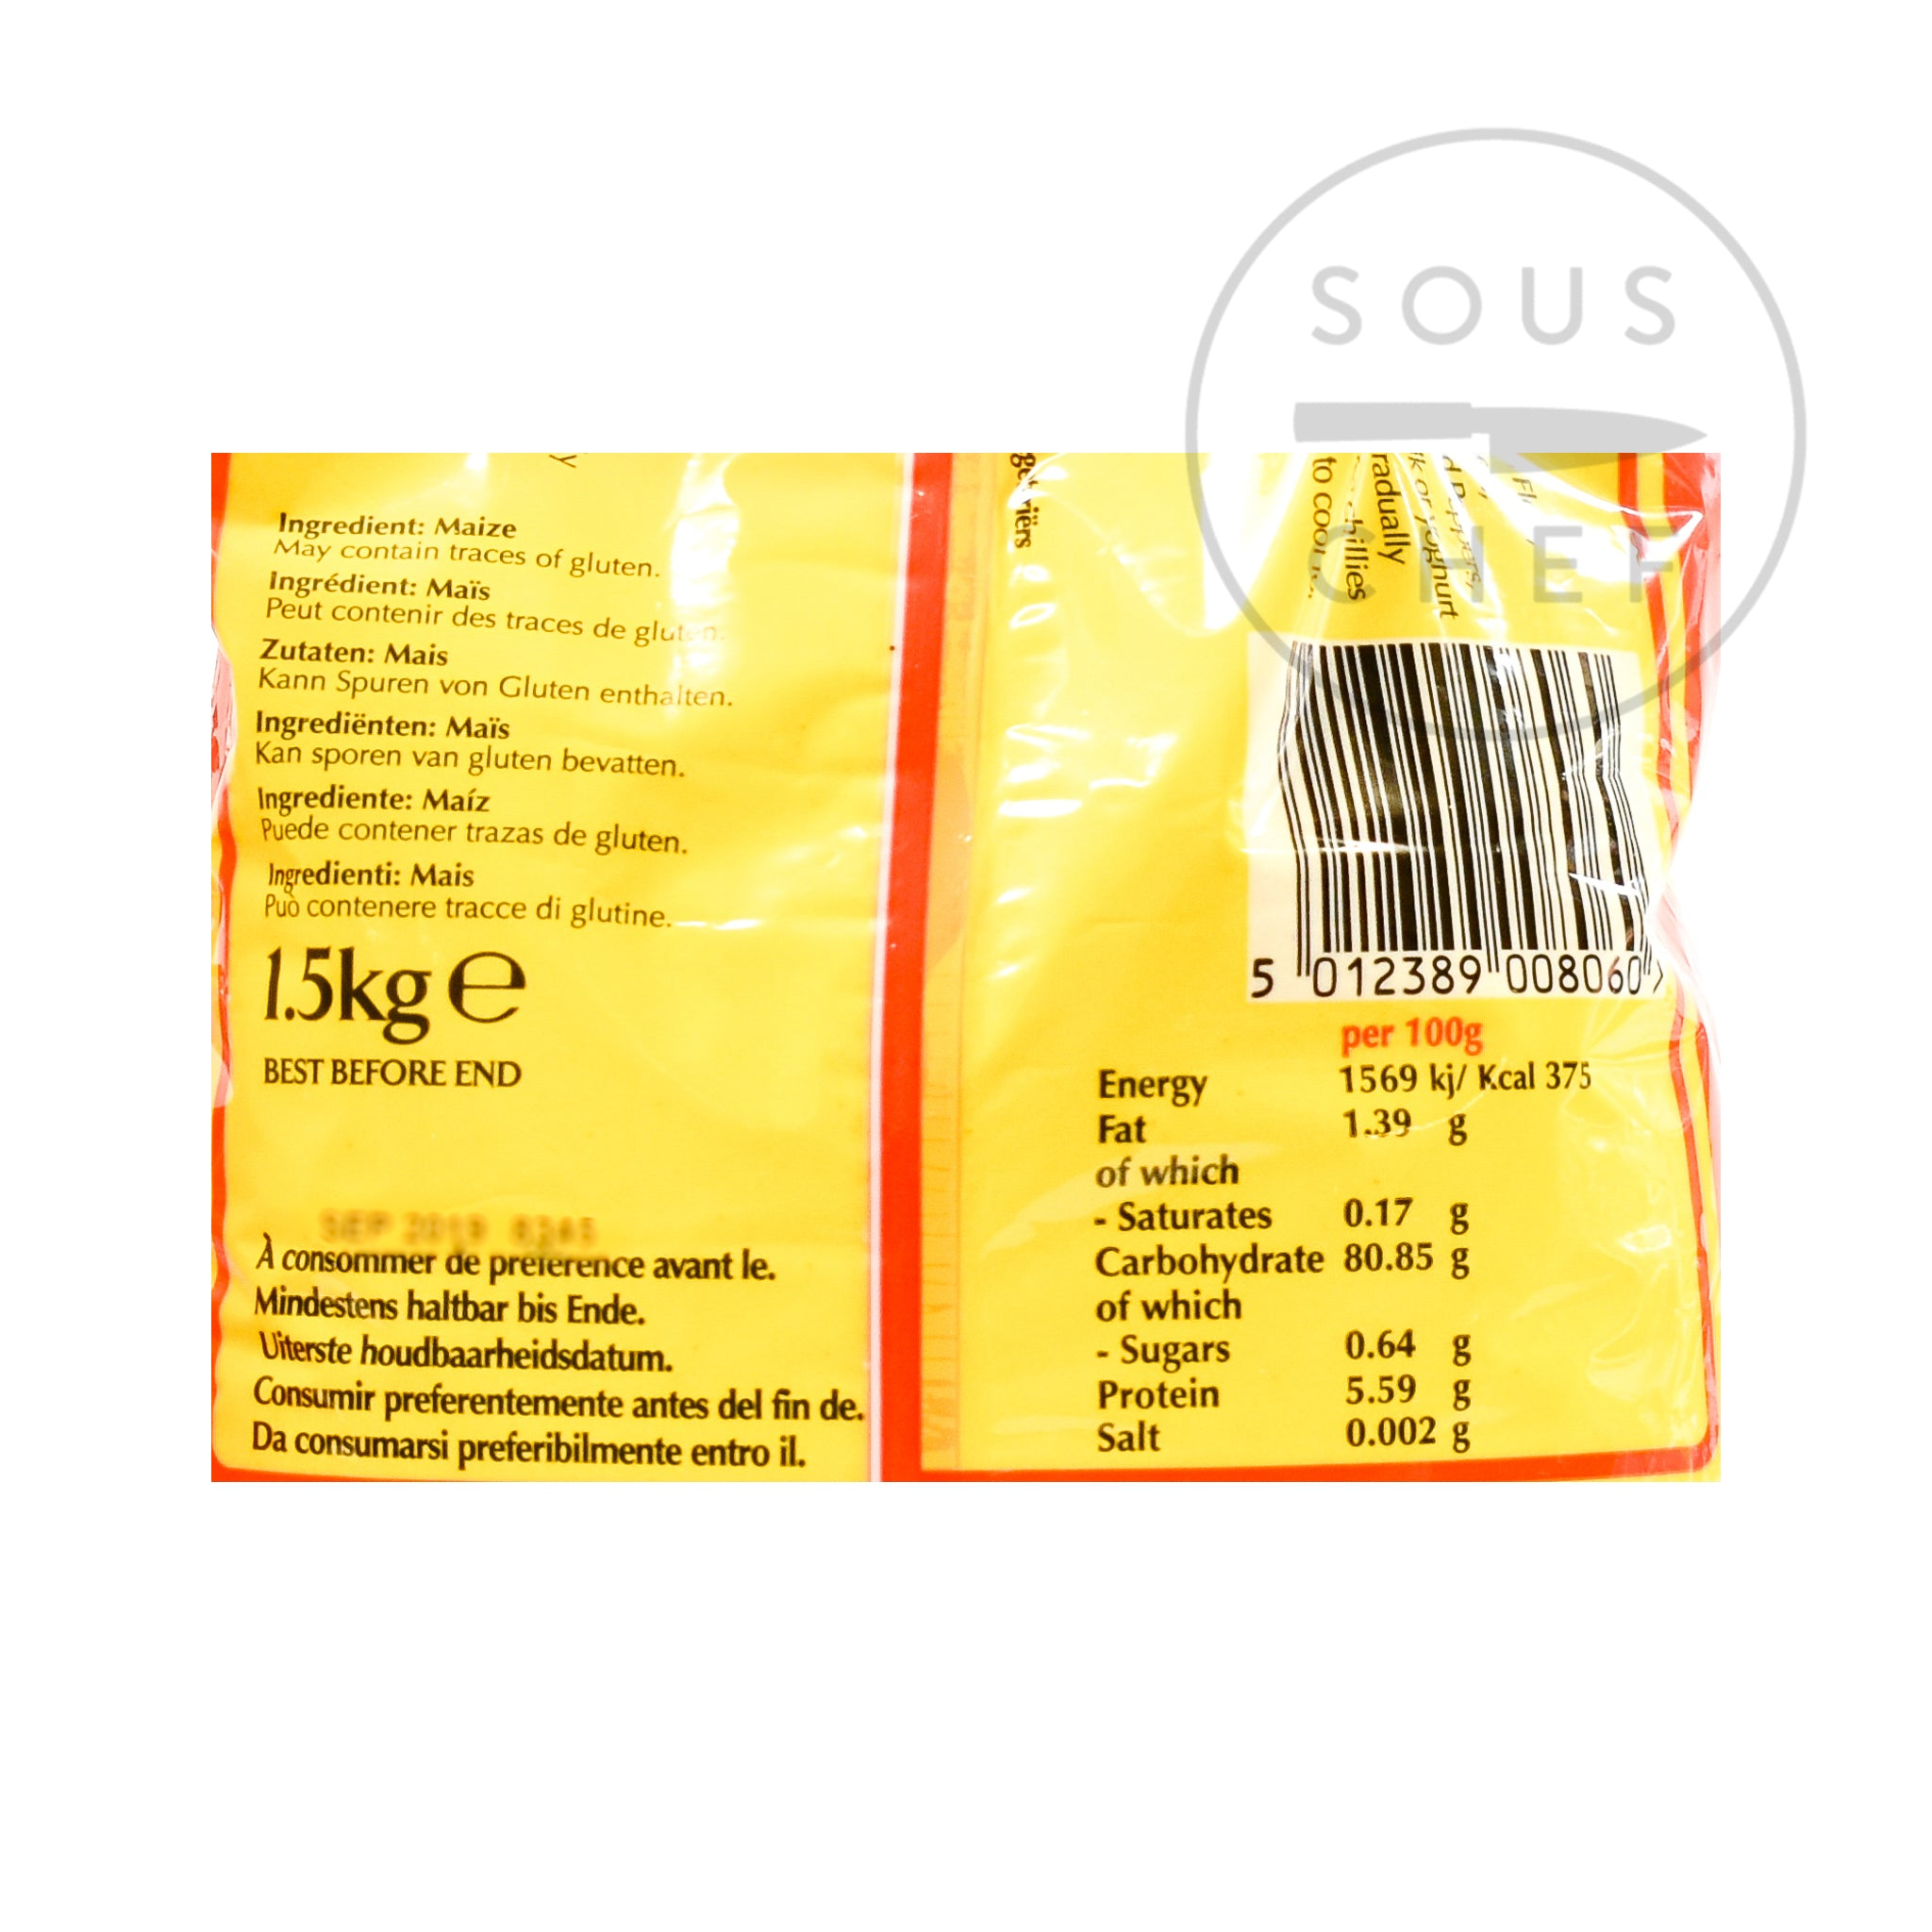 Dunn's River Cornmeal Fine Polenta 1.5kg nutritional information ingredients